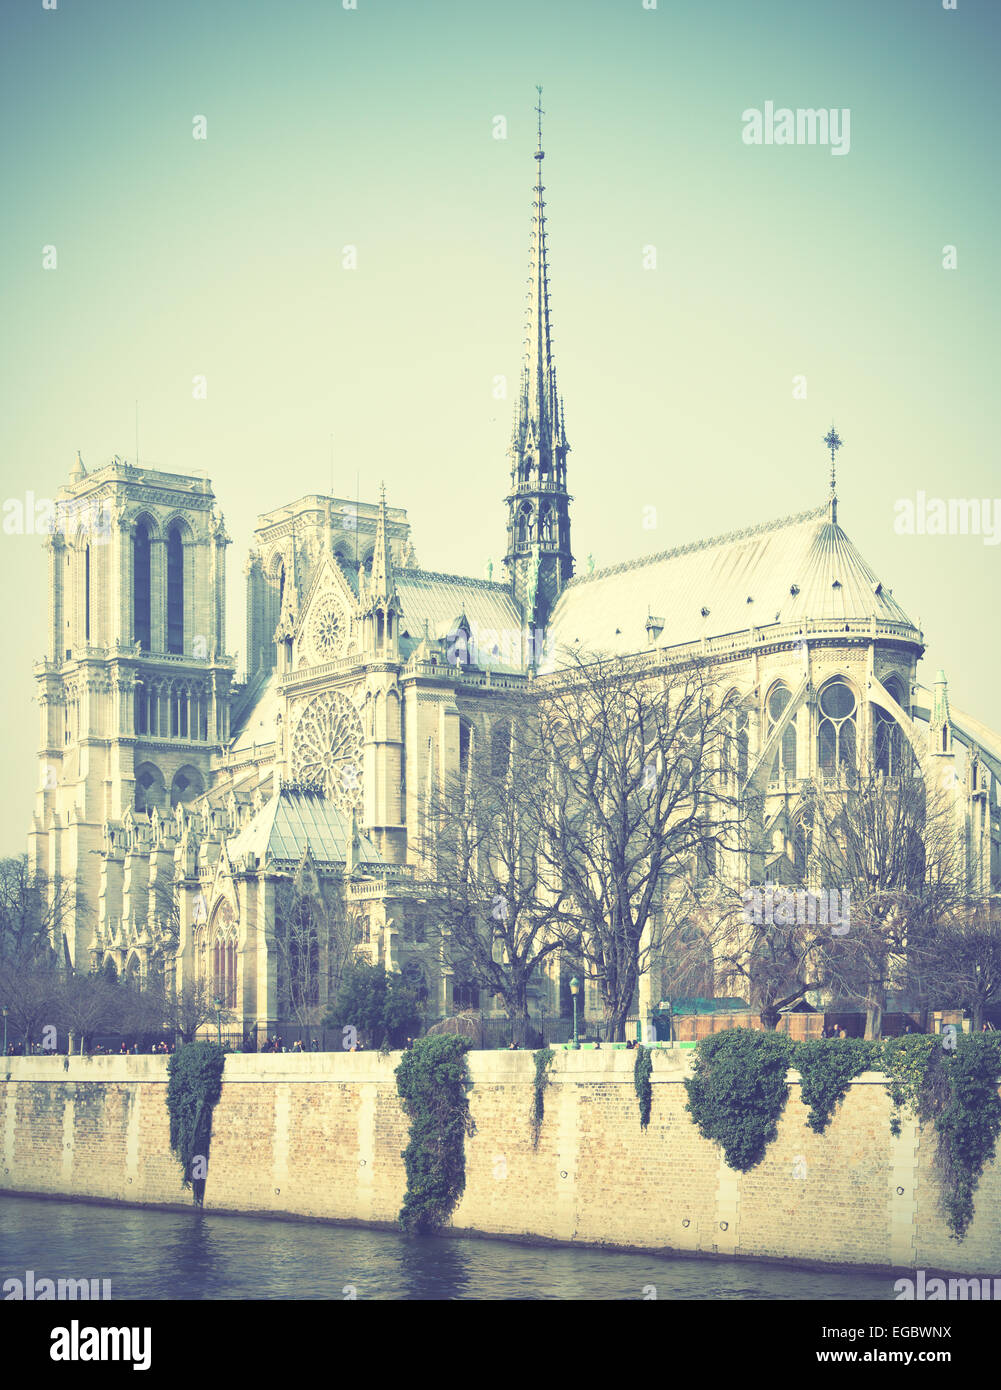 Notre Dame de Paris in France. Retro style filtred image - Stock Image